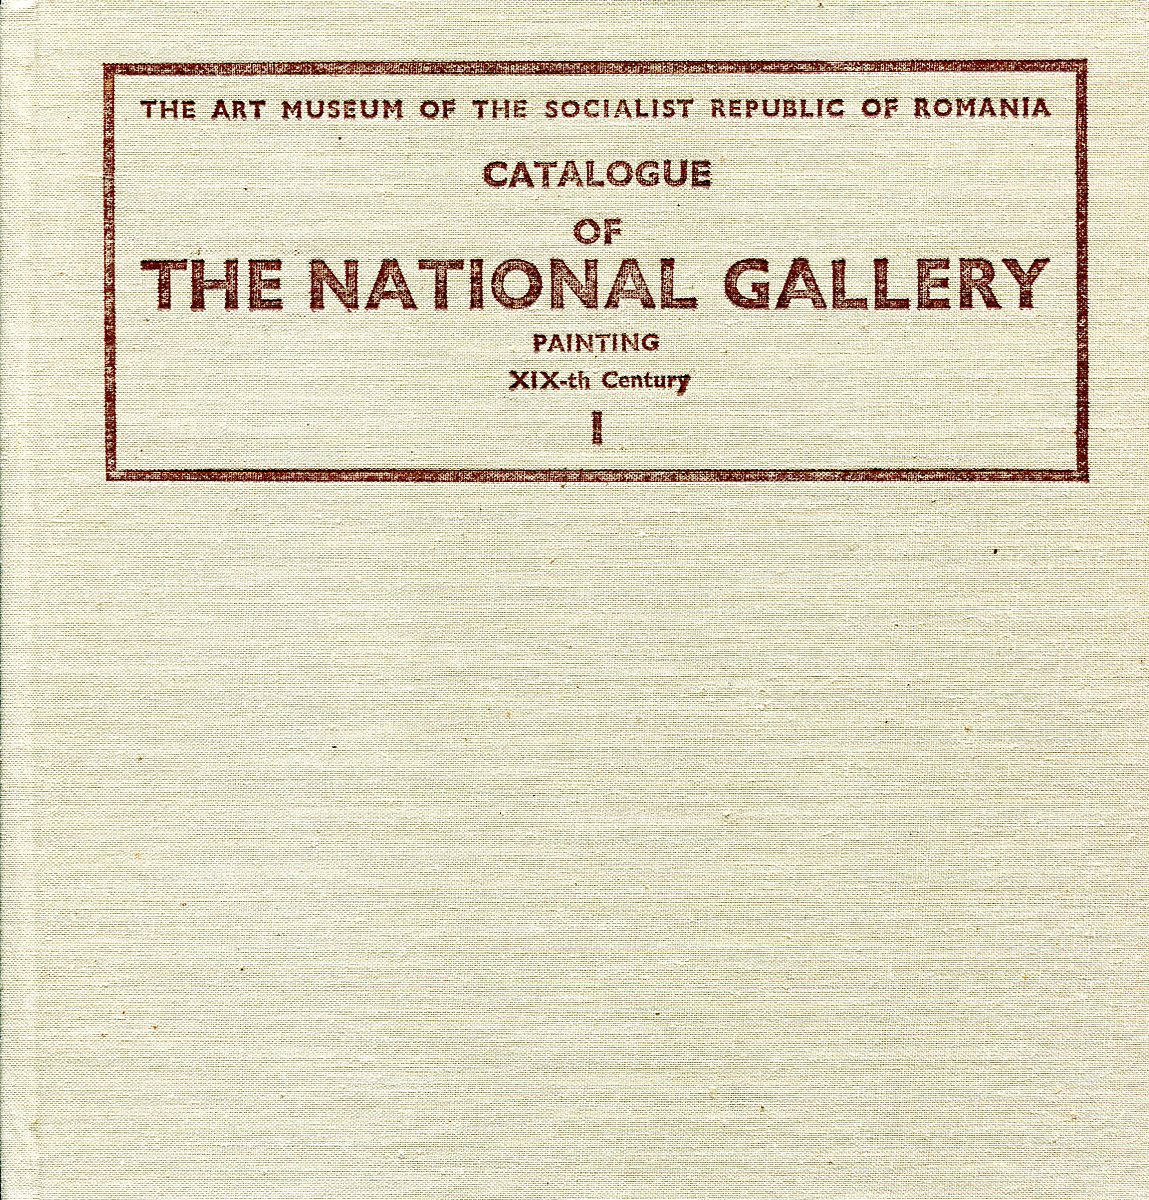 Catalogue of the National Gallery Painting XIX-th Century